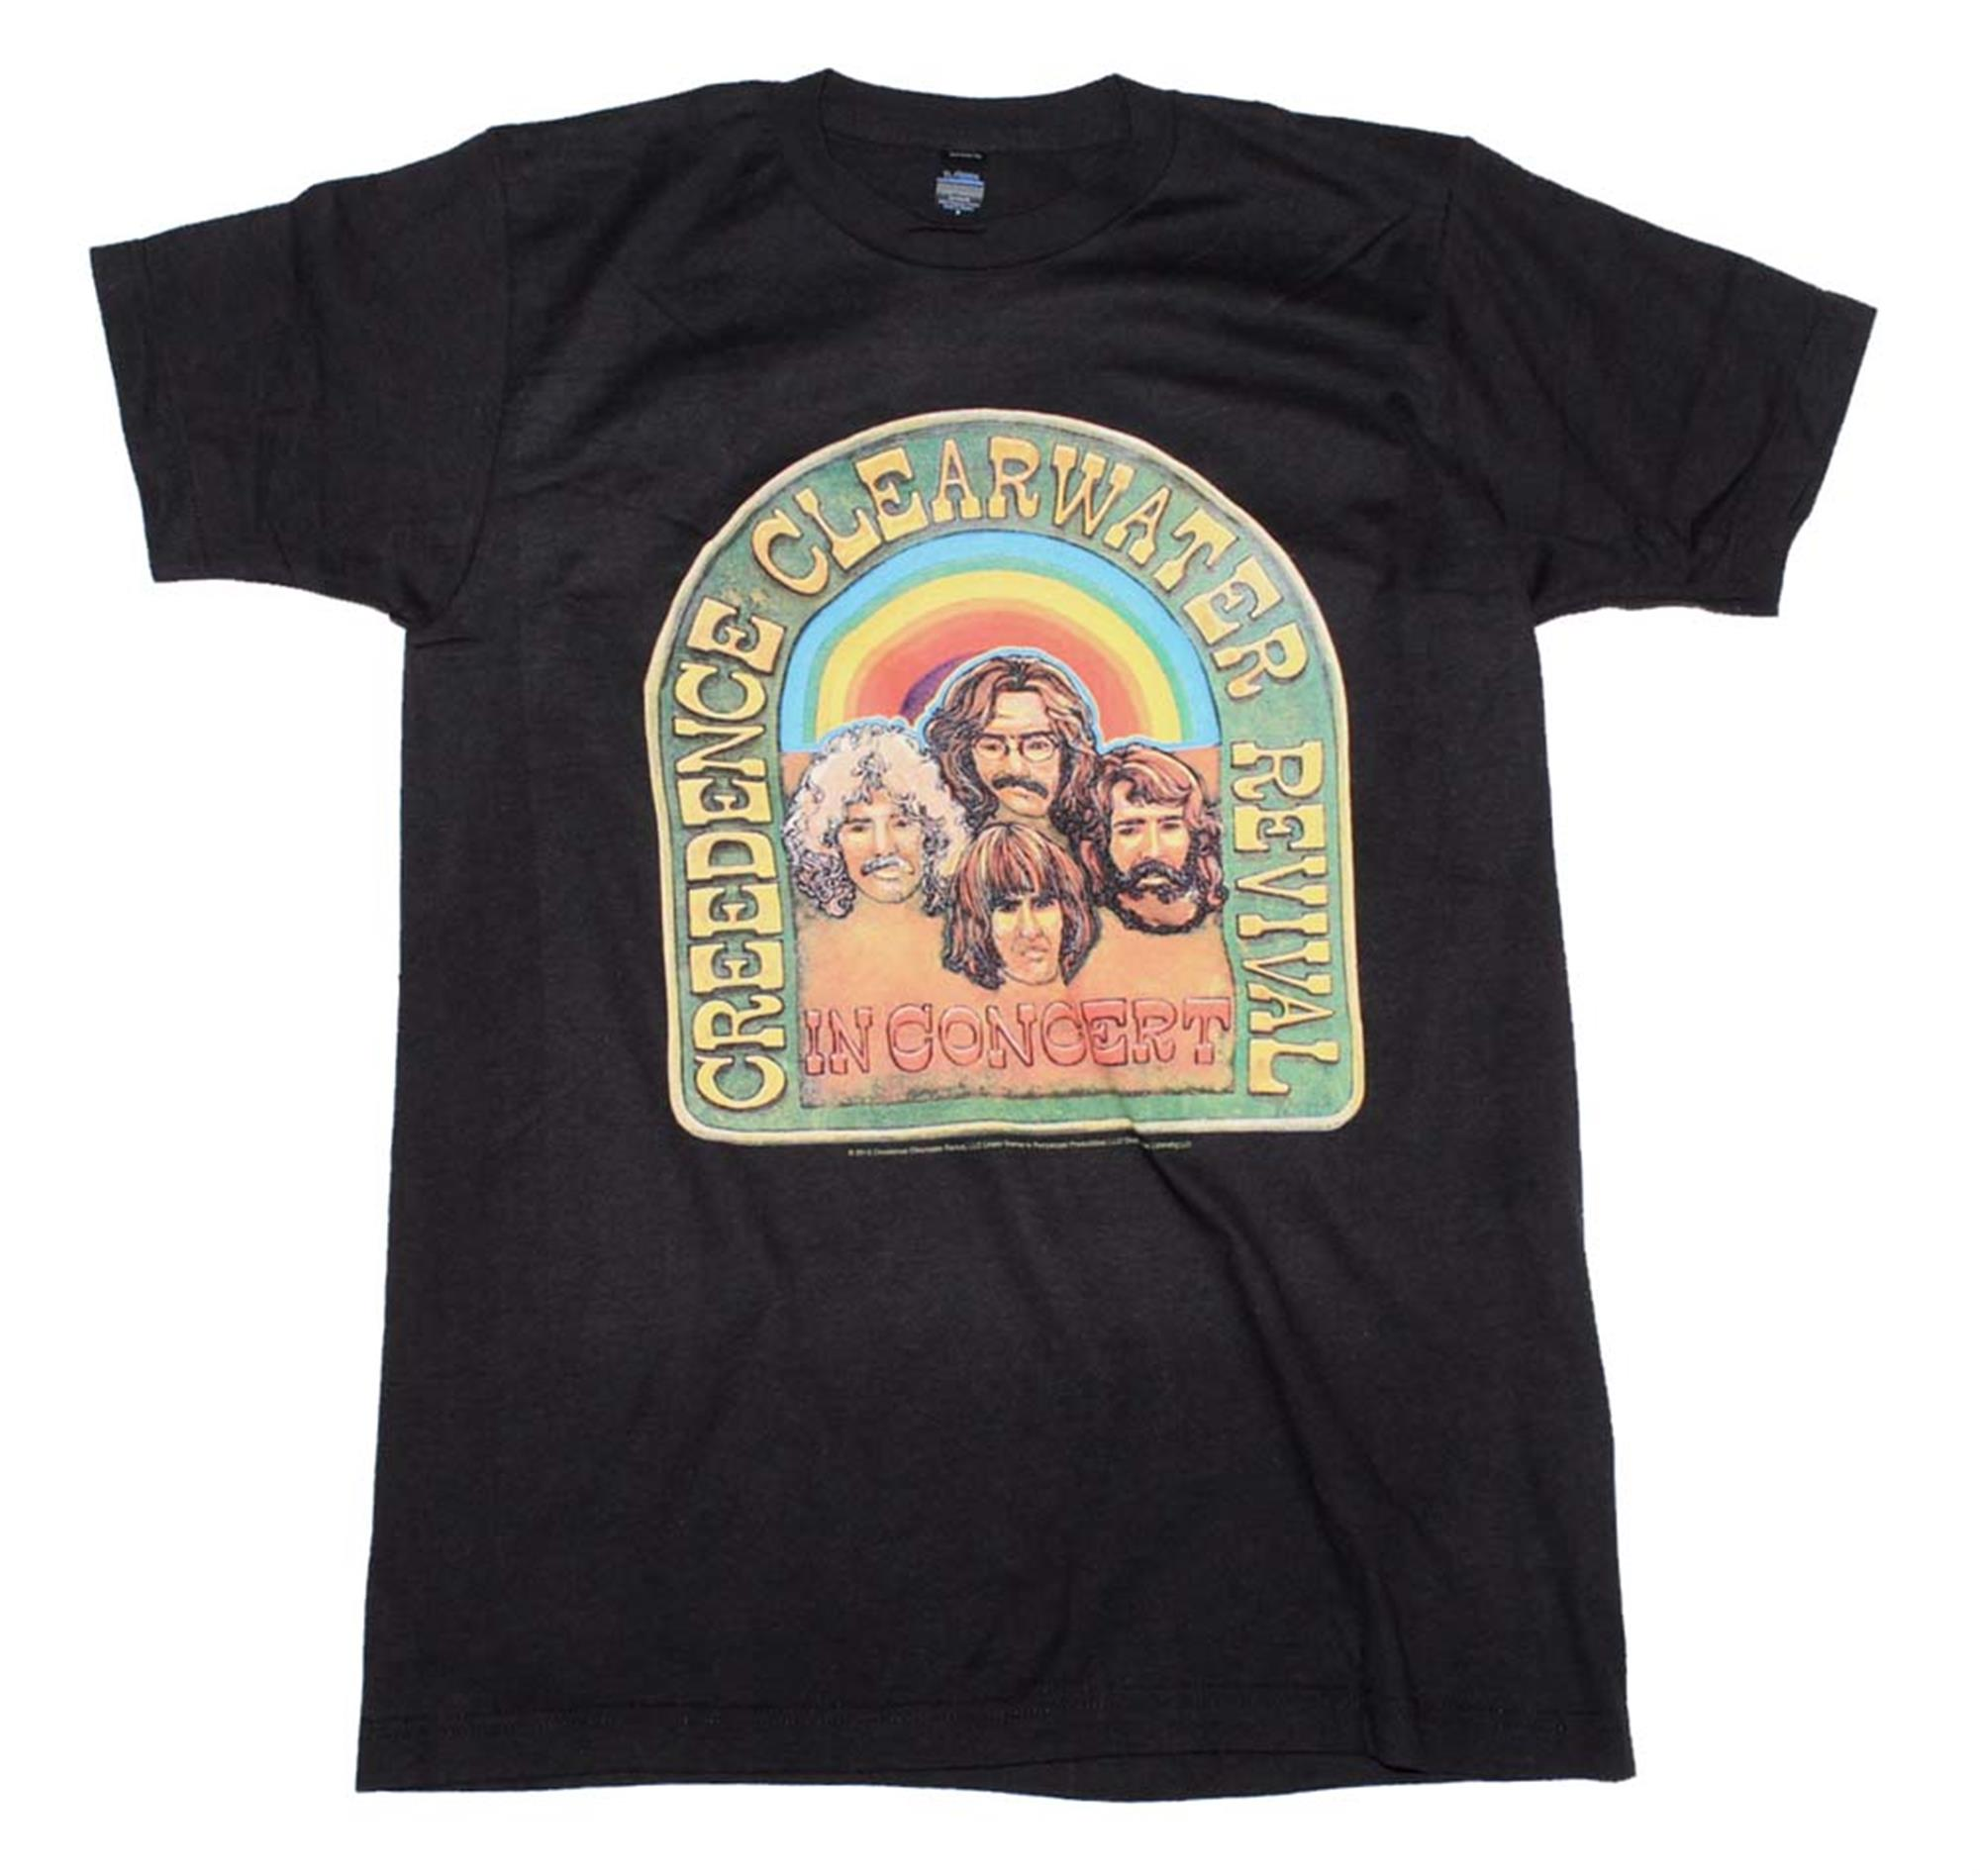 Creedence Clearwater Revival In Concert T-Shirt